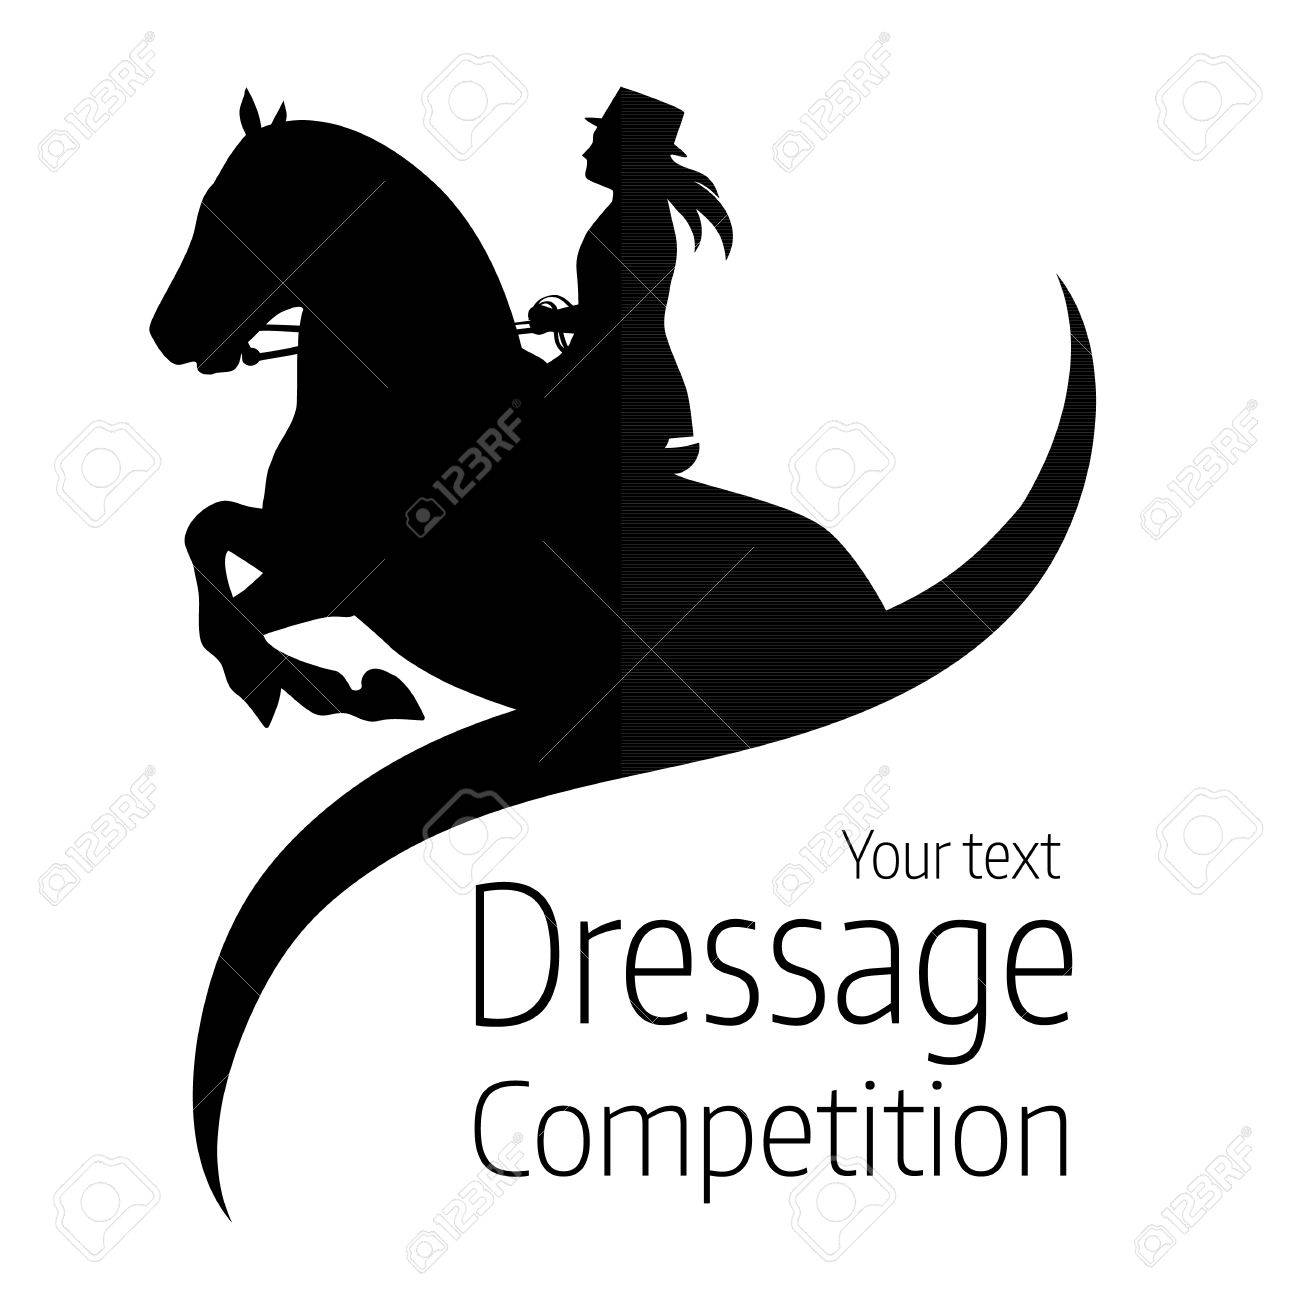 Equestrian dressage competitions - vector illustration of horse - 74902549